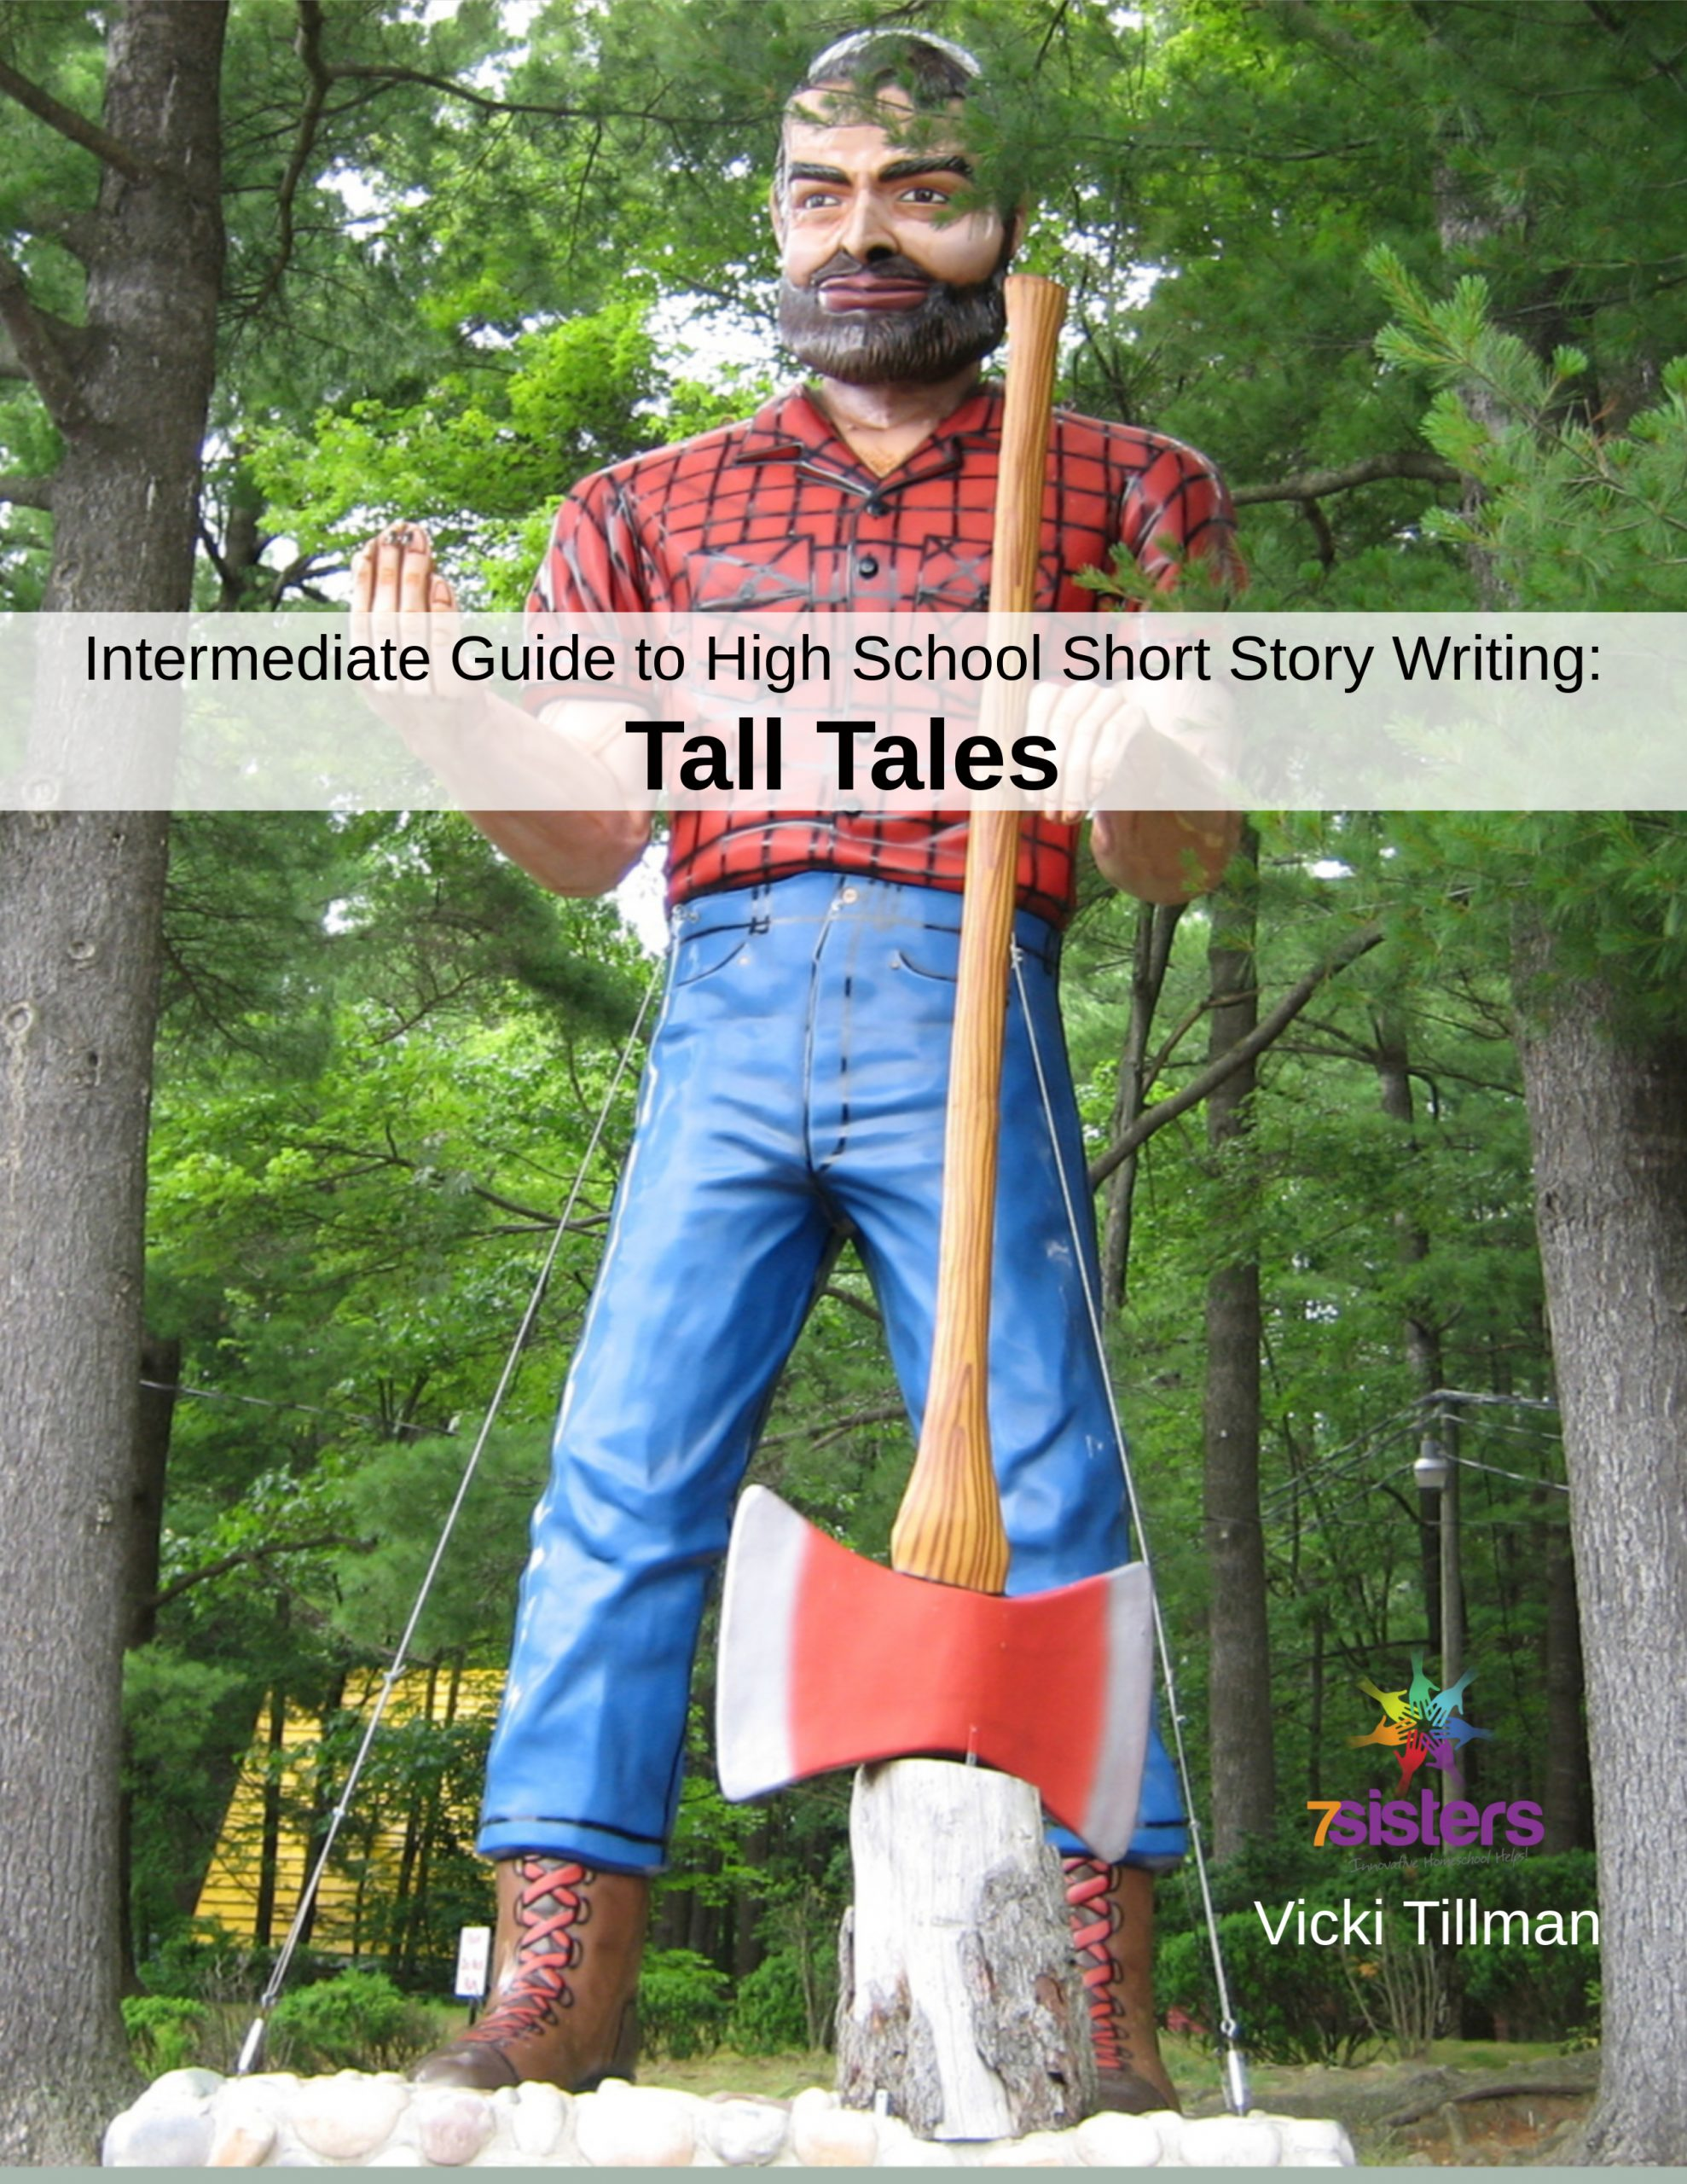 Intermediate Guide to Short Story Writing: Tall Tales is a no-busywork, step-by-step, day-by-day writing guide for homeschool high schoolers.